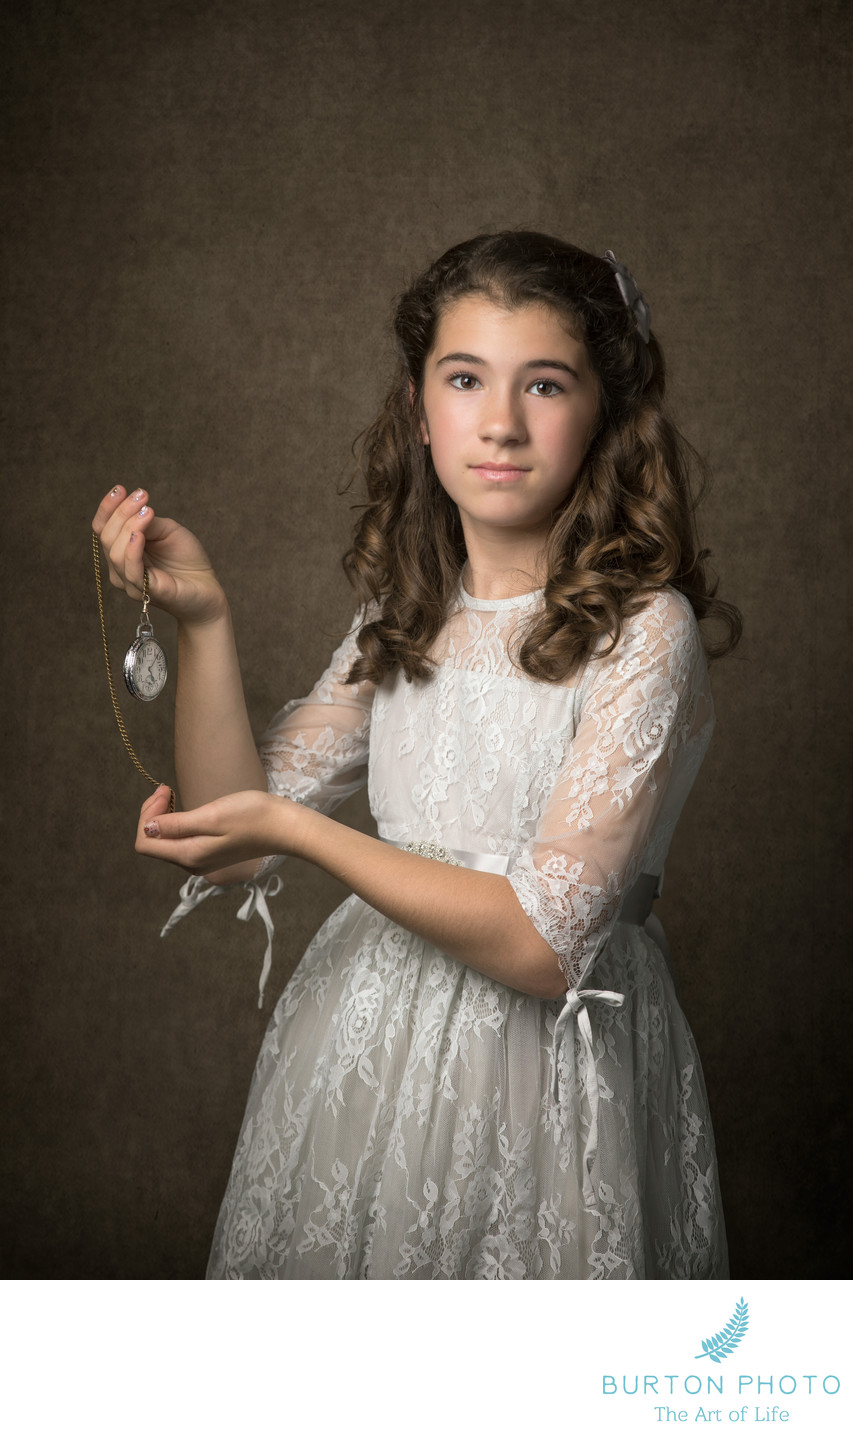 Boone Studio Portrait Girl with Heirloom Pocket Watch